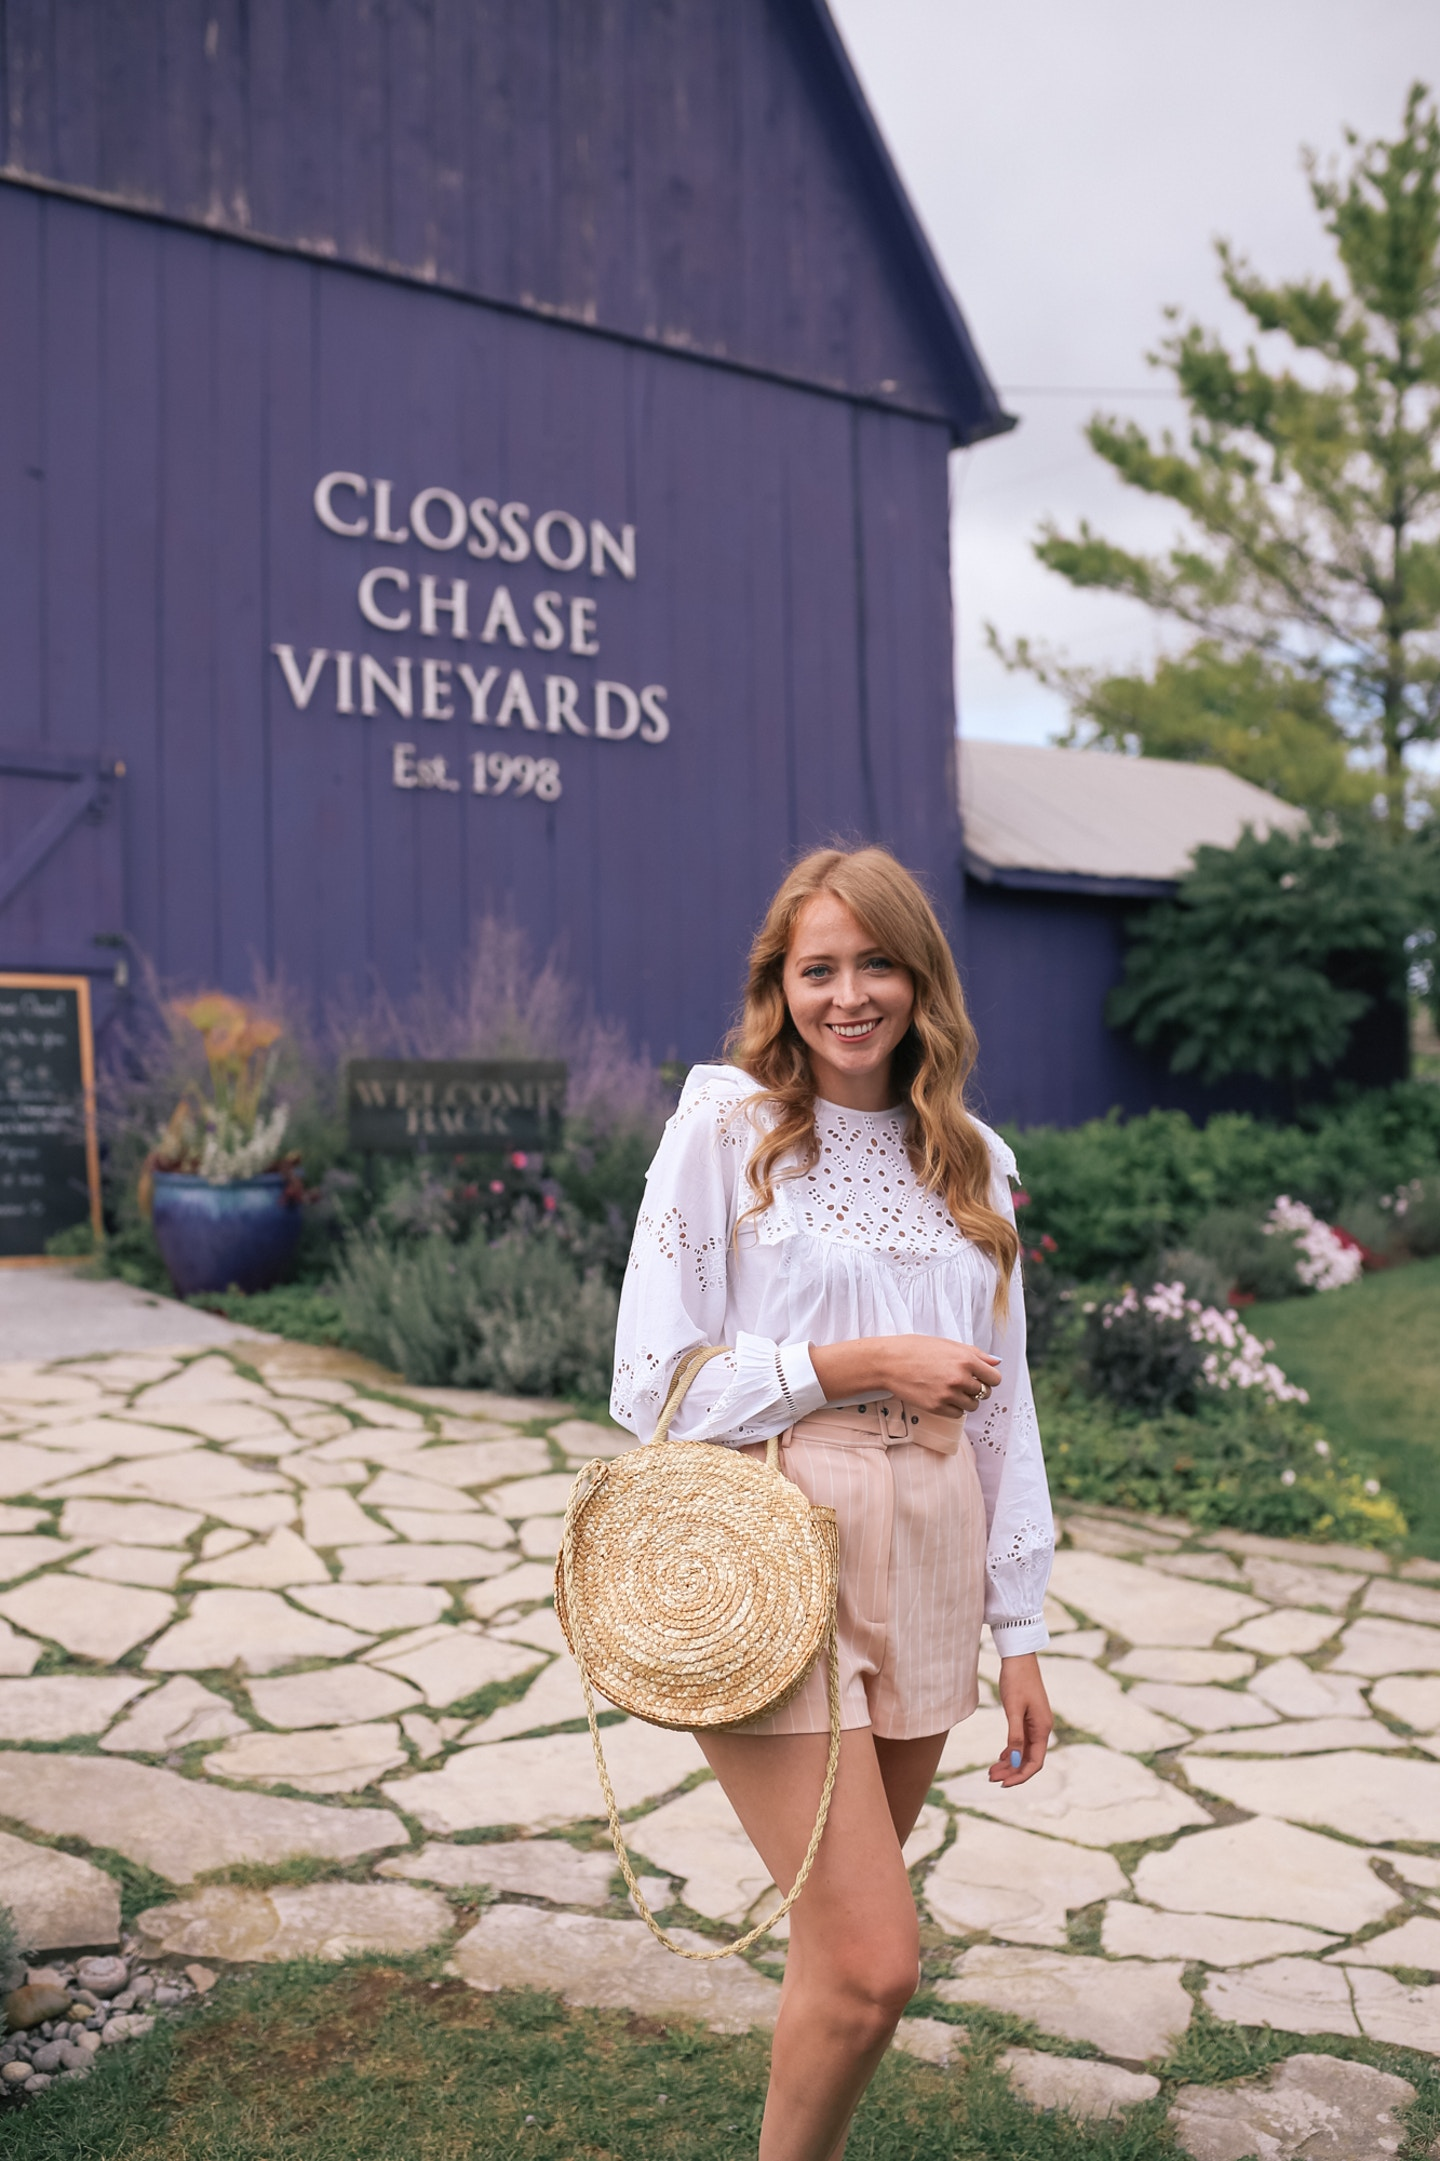 Closson Chasse Vineyards is a favourite Prince Edward County Winery with incredible Chardonnays and Pinot Noir wines.